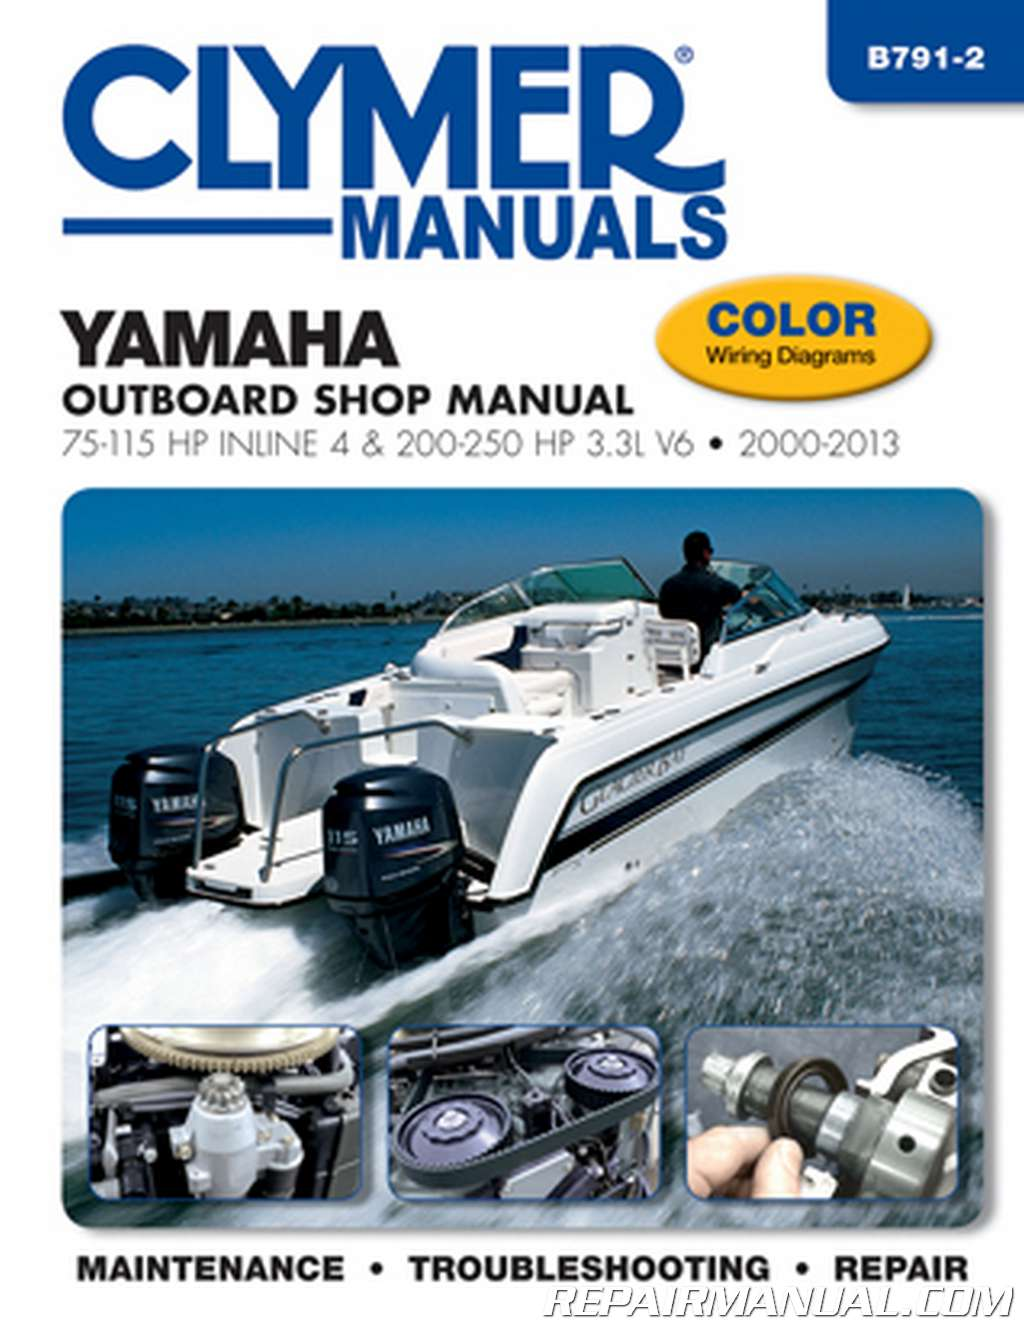 hight resolution of 2000 2013 yamaha outboard shop manual 75 115 hp inline 4 and 200 250 hp 3 3l v6